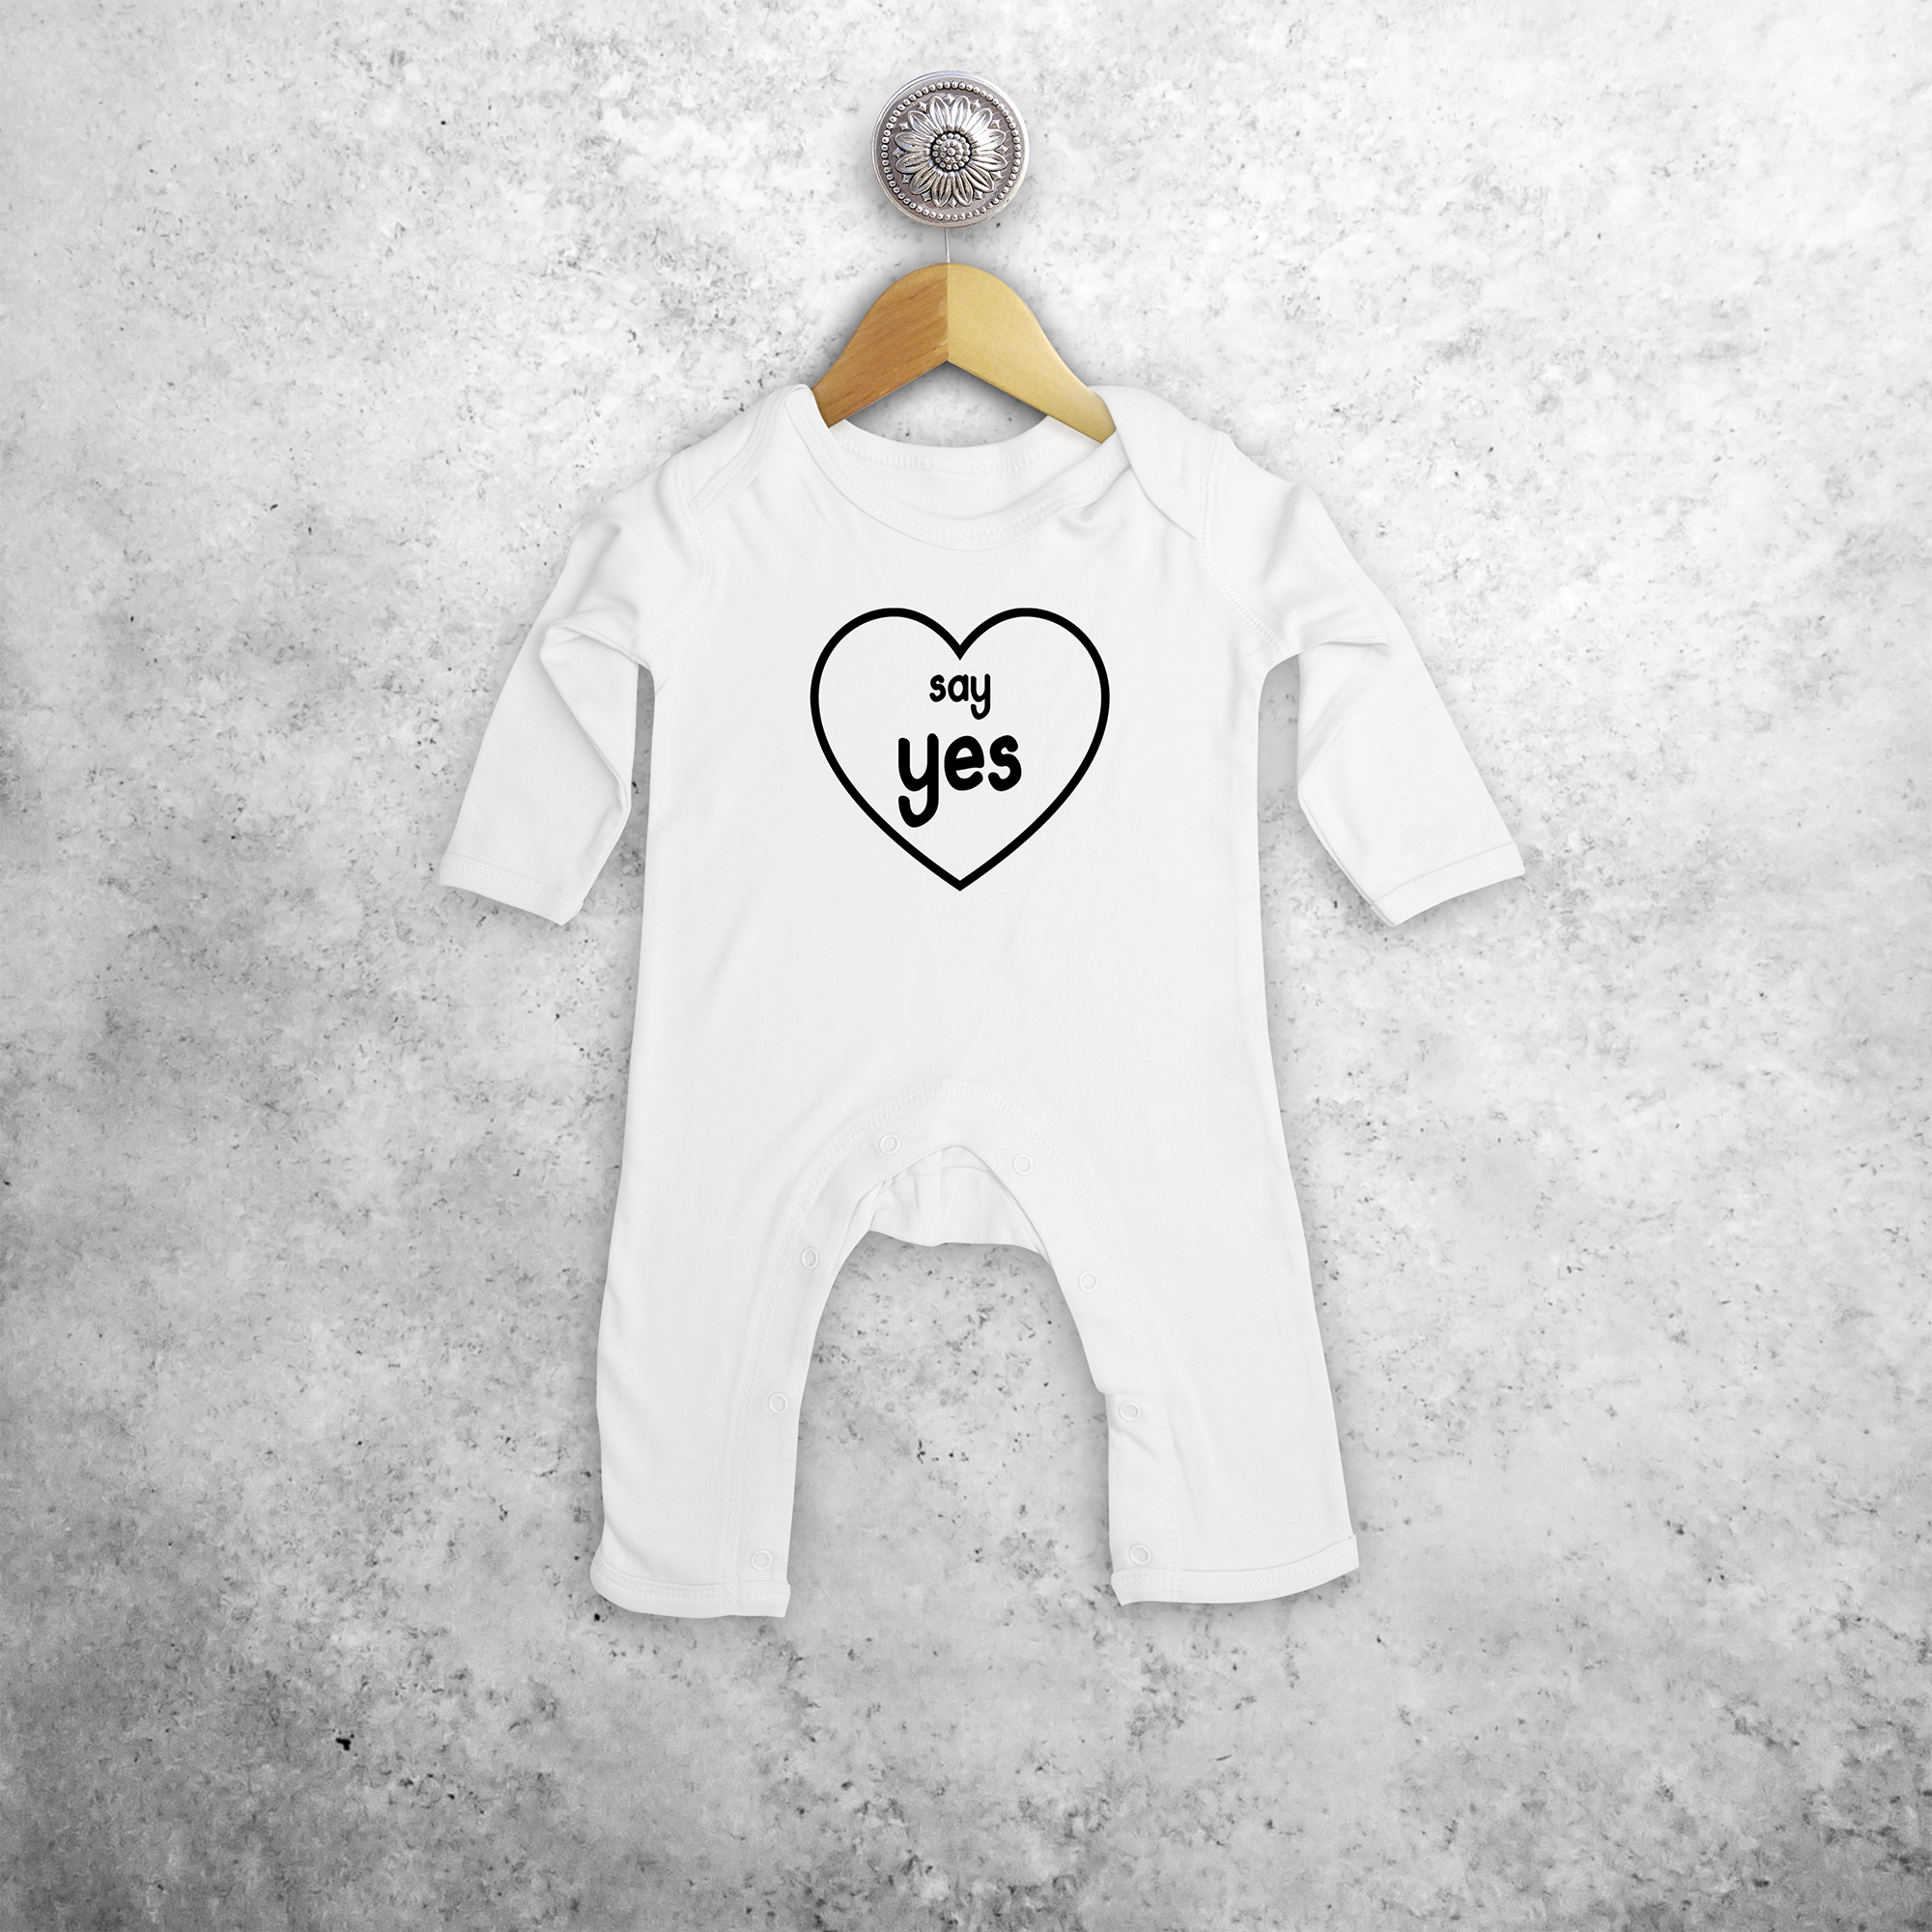 'Say yes' baby romper